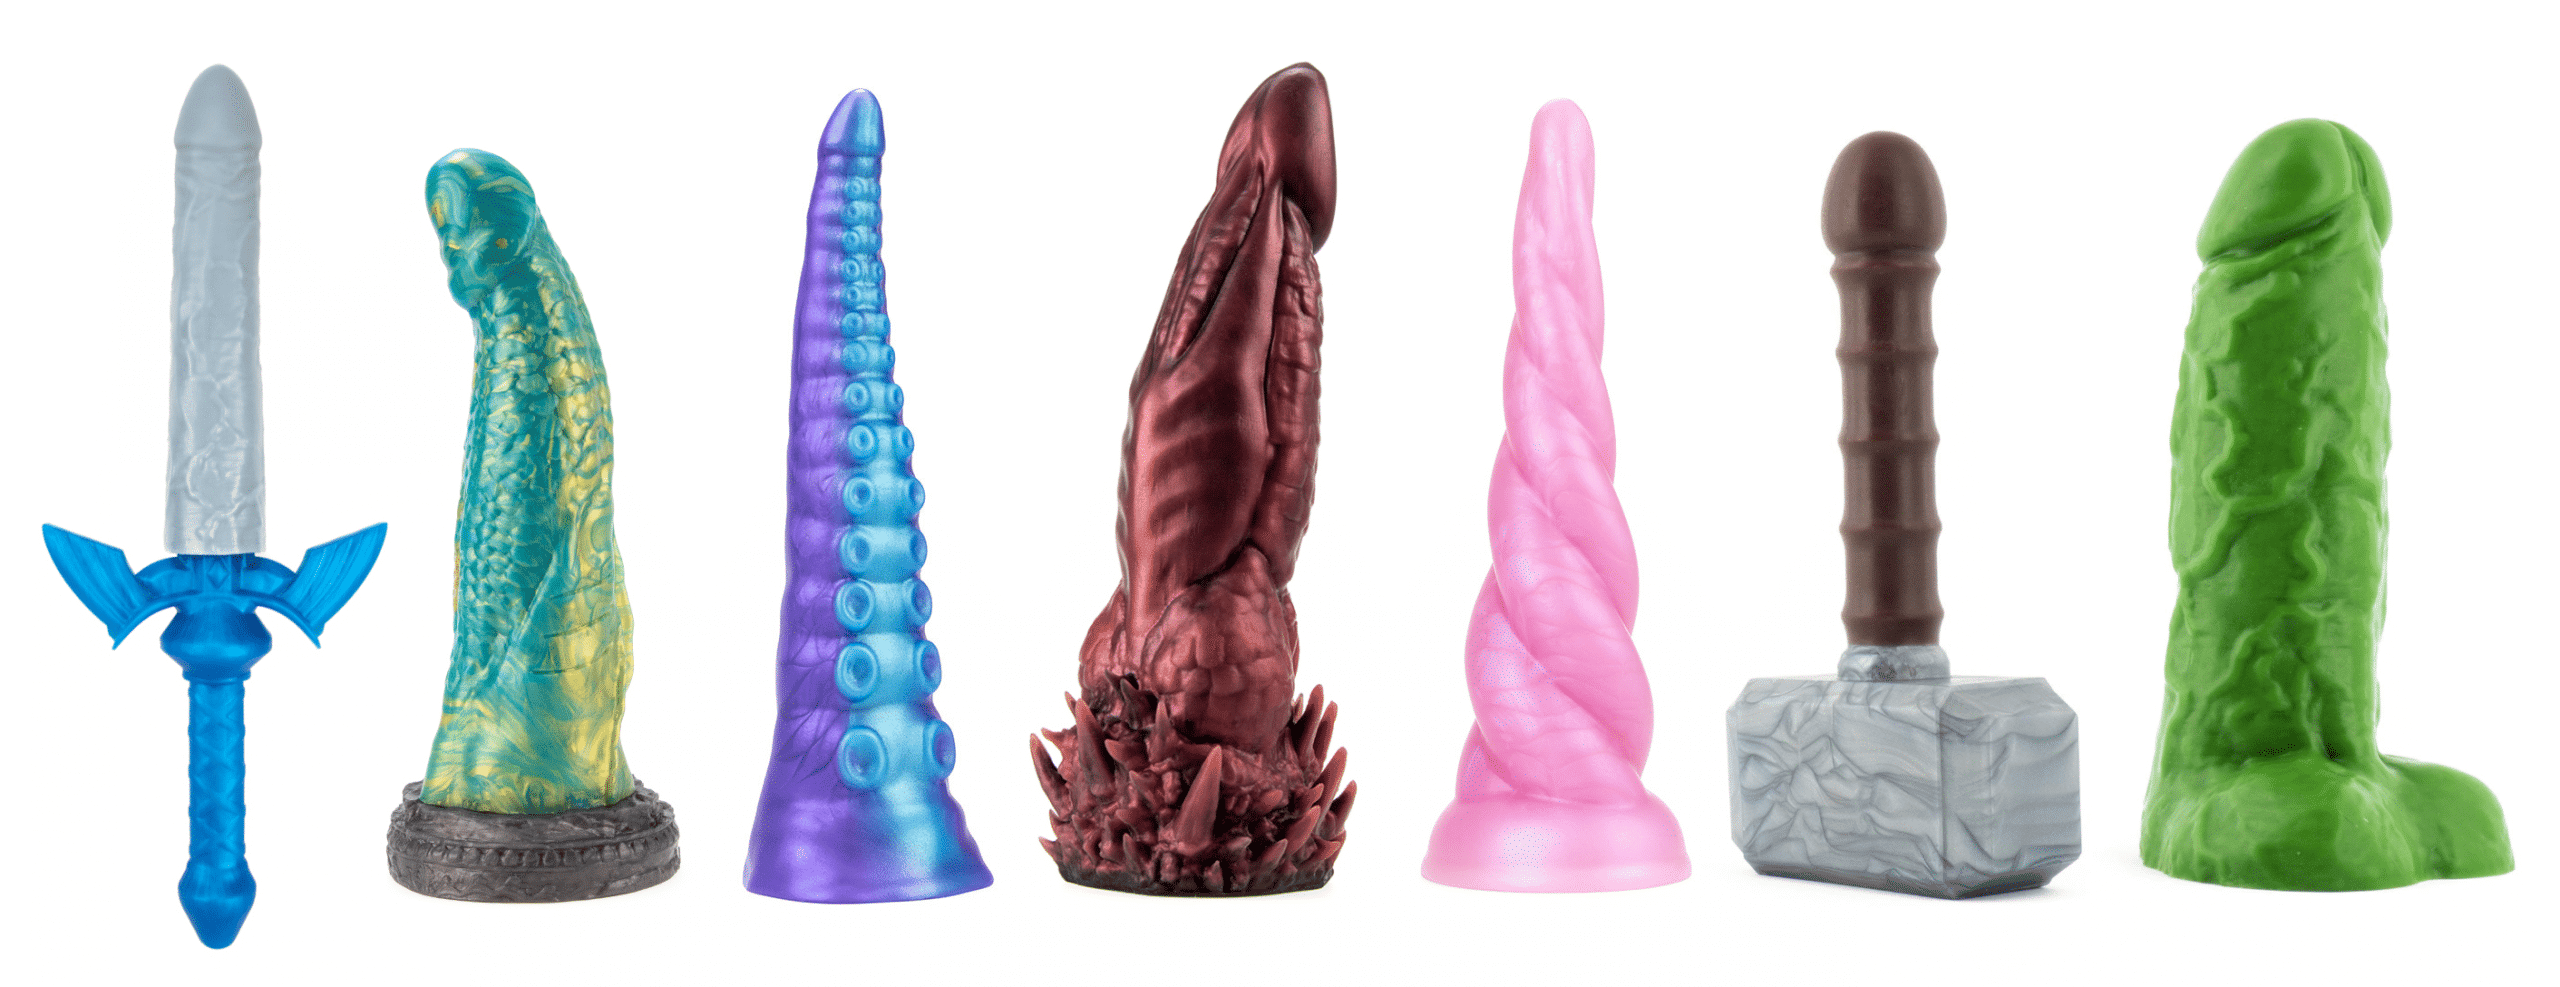 Geeky sex toys fantasy and superhero dildos